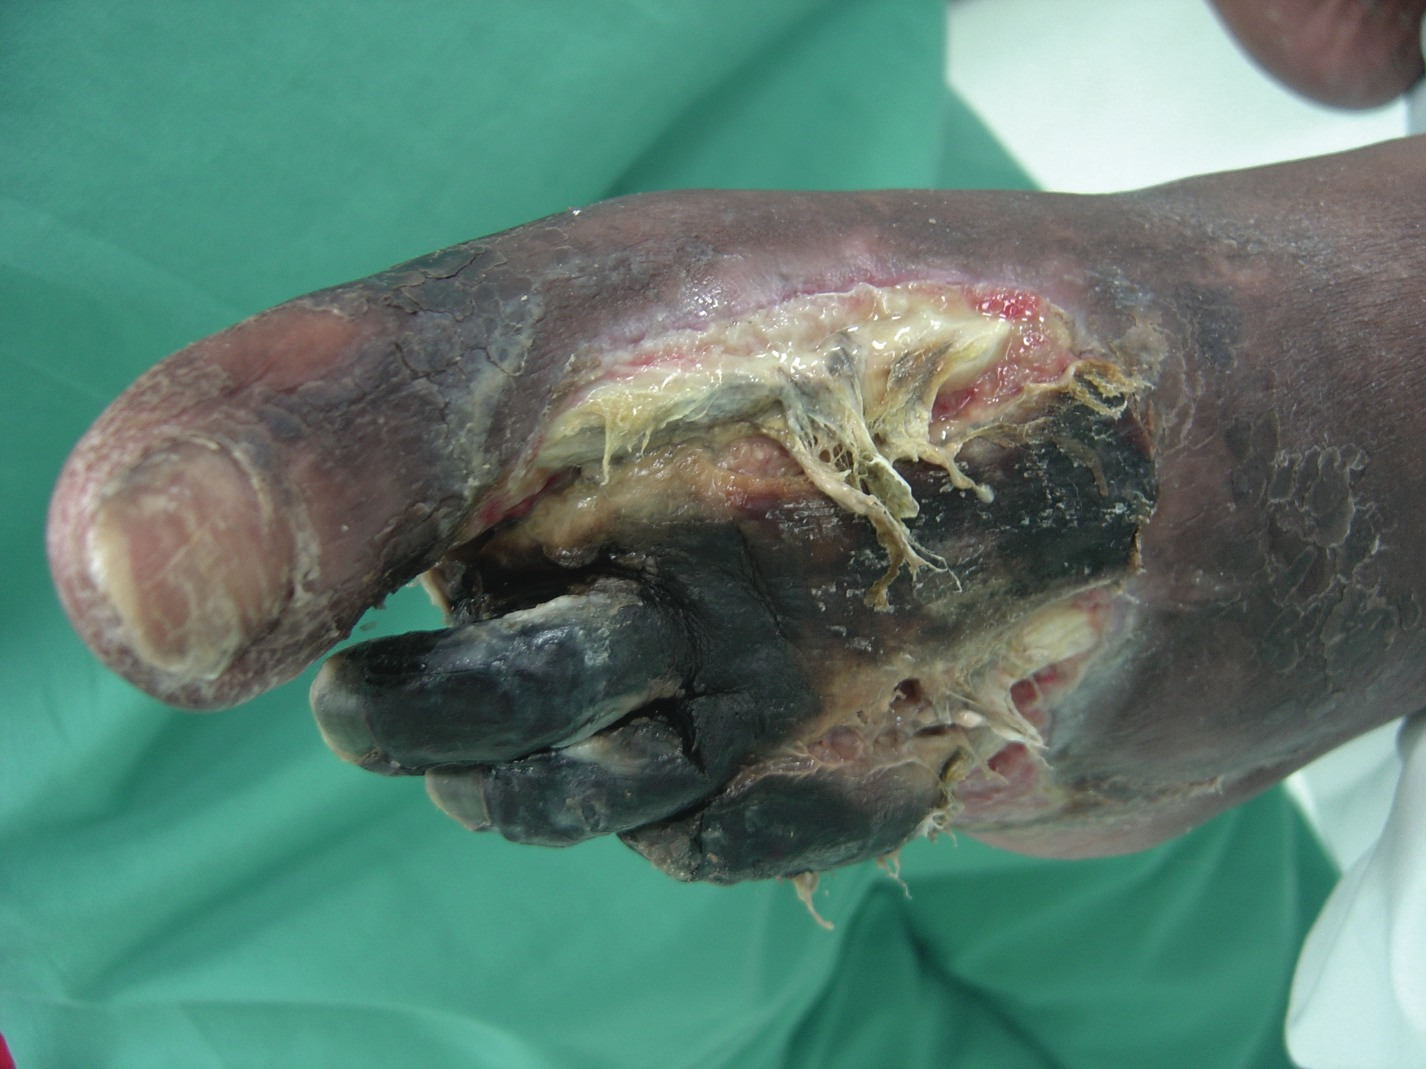 How To Choose Appropriate Antibiotics For Diabetic Foot Infections